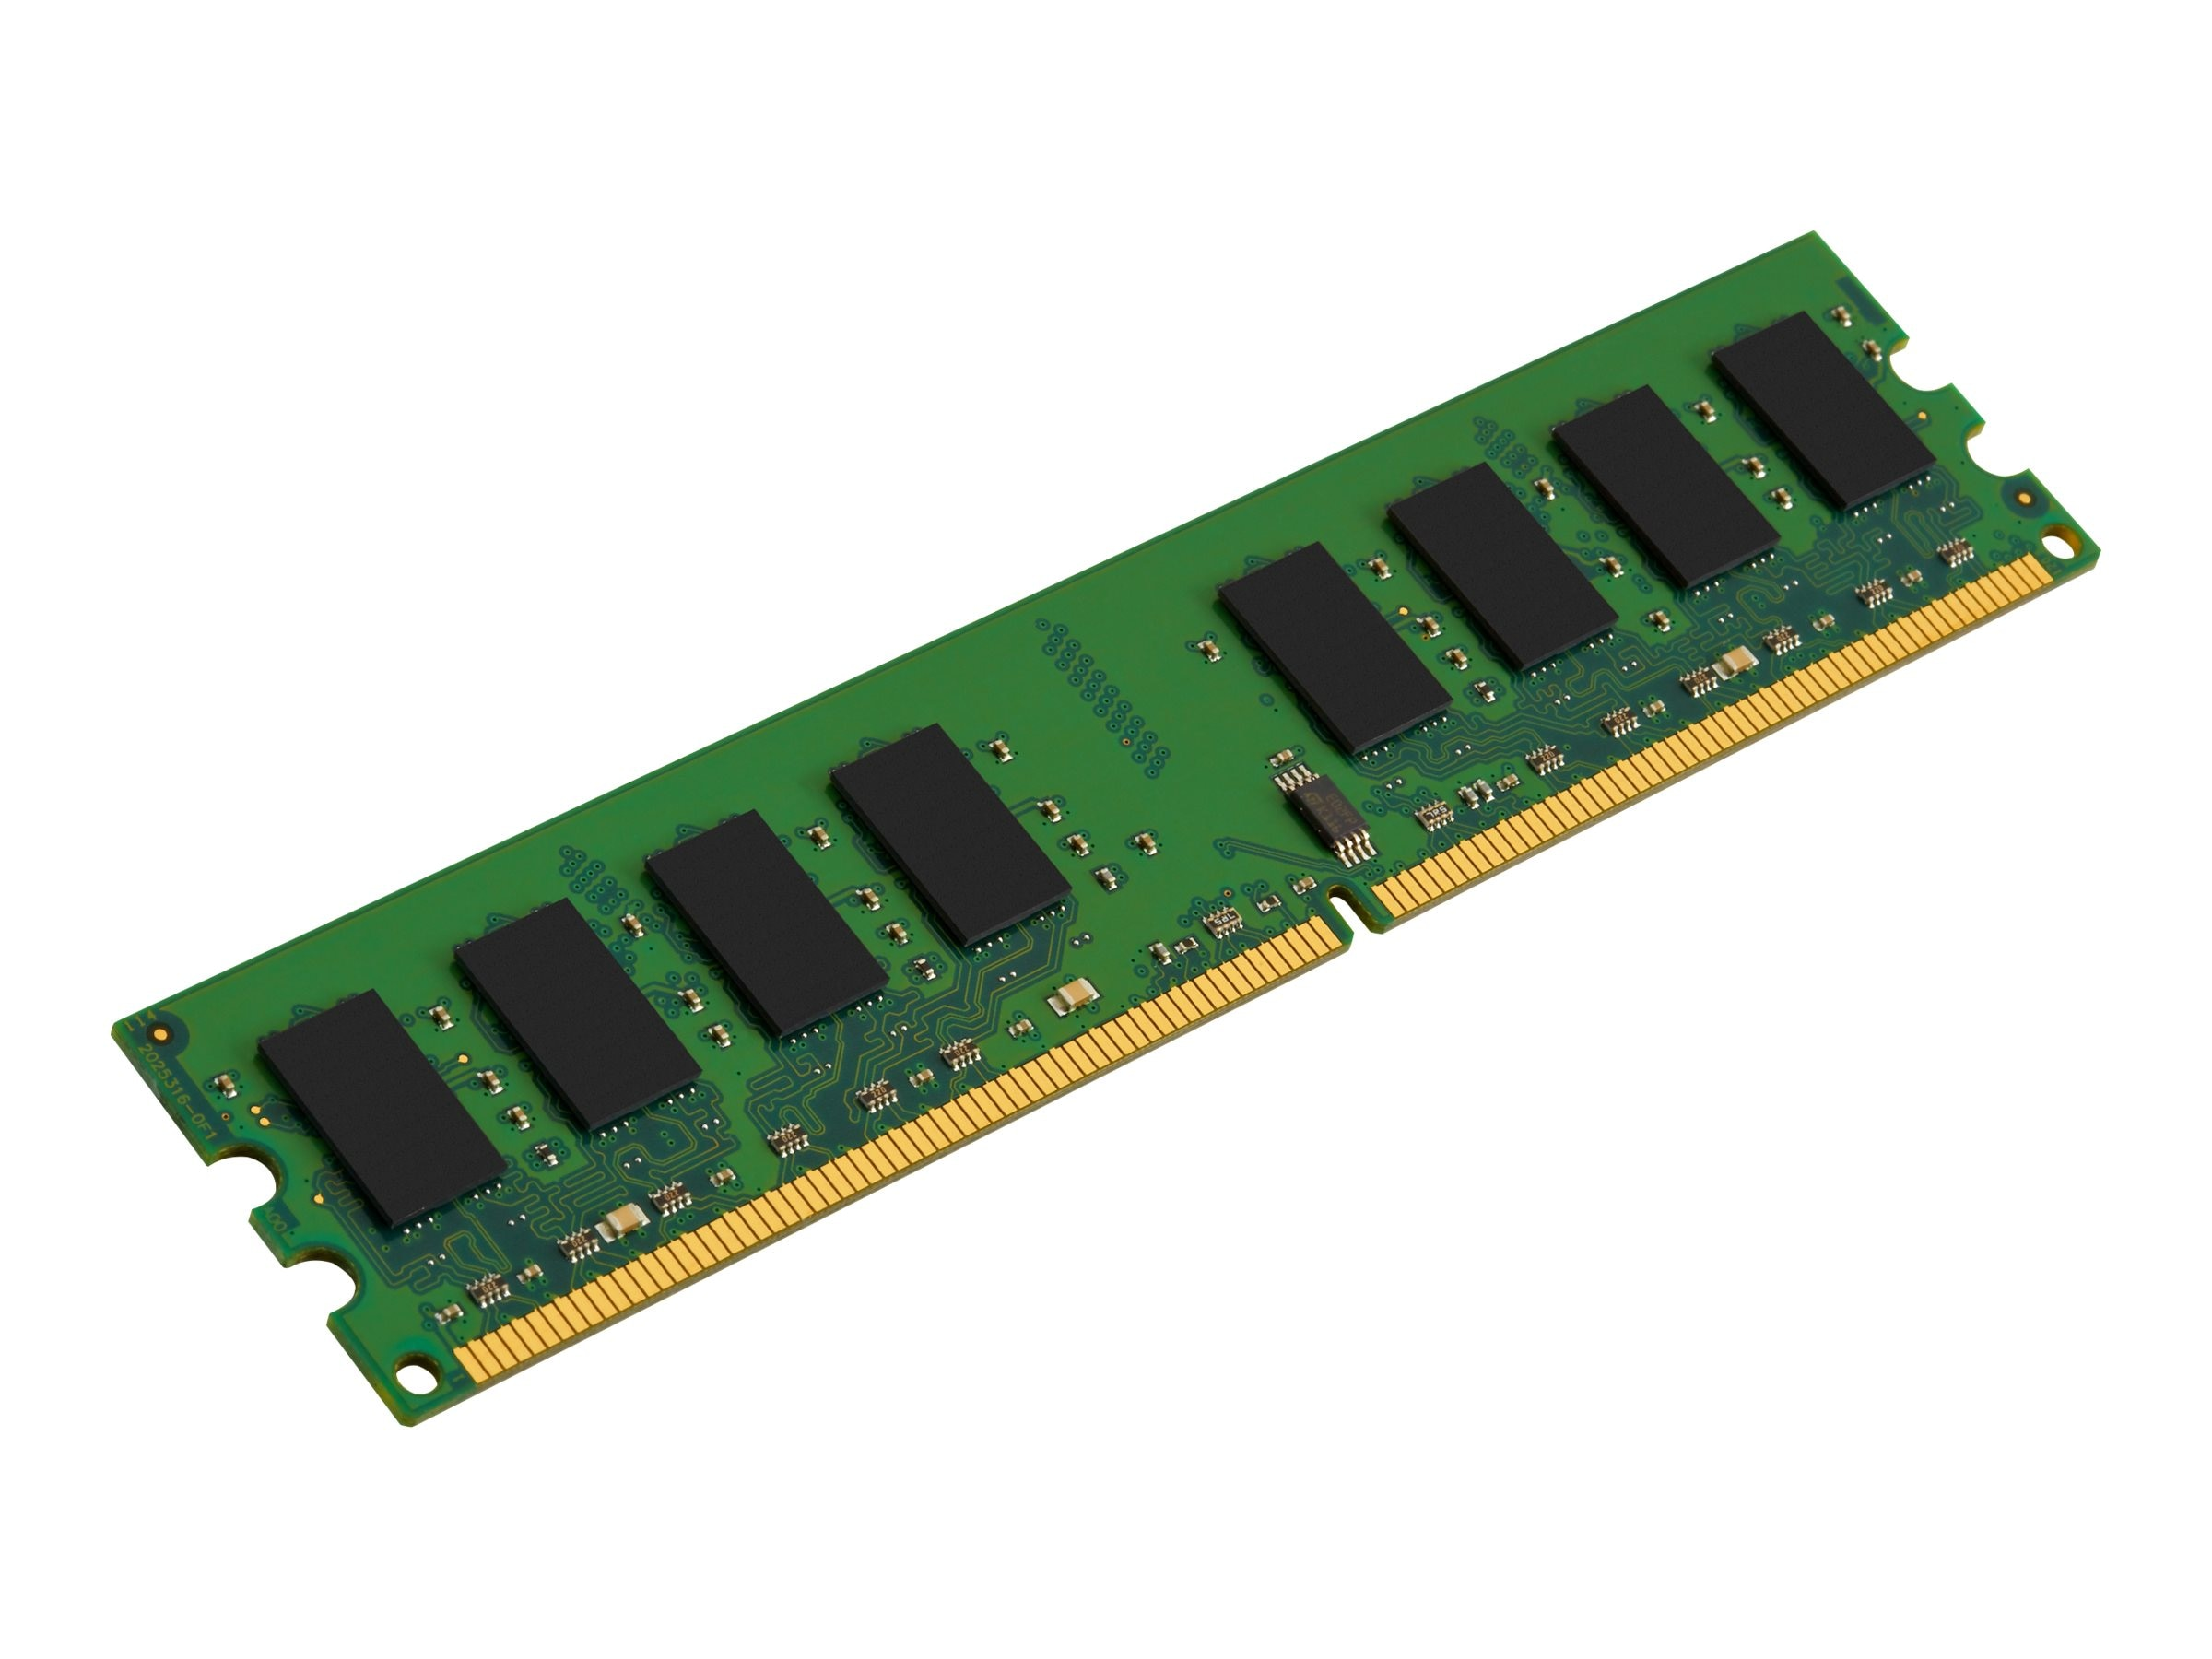 Kingston 2GB PC2-5300 240-pin DDR2 SDRAM UDIMM for Select HP Models, KTH-XW4300/2G